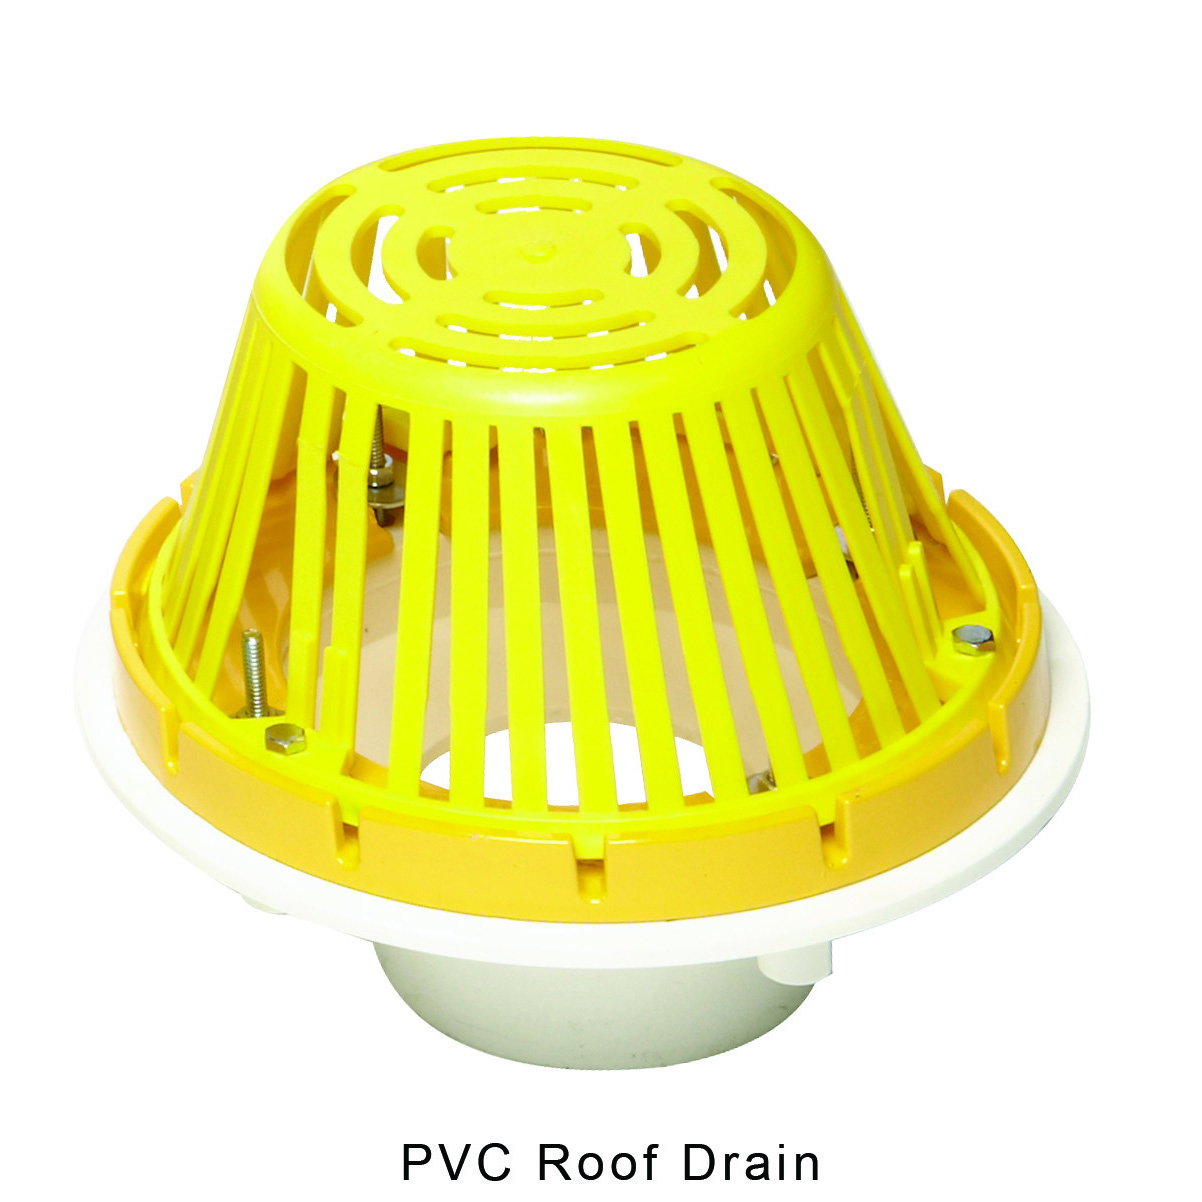 Pvc Drain And Plus Pack Portalsplus